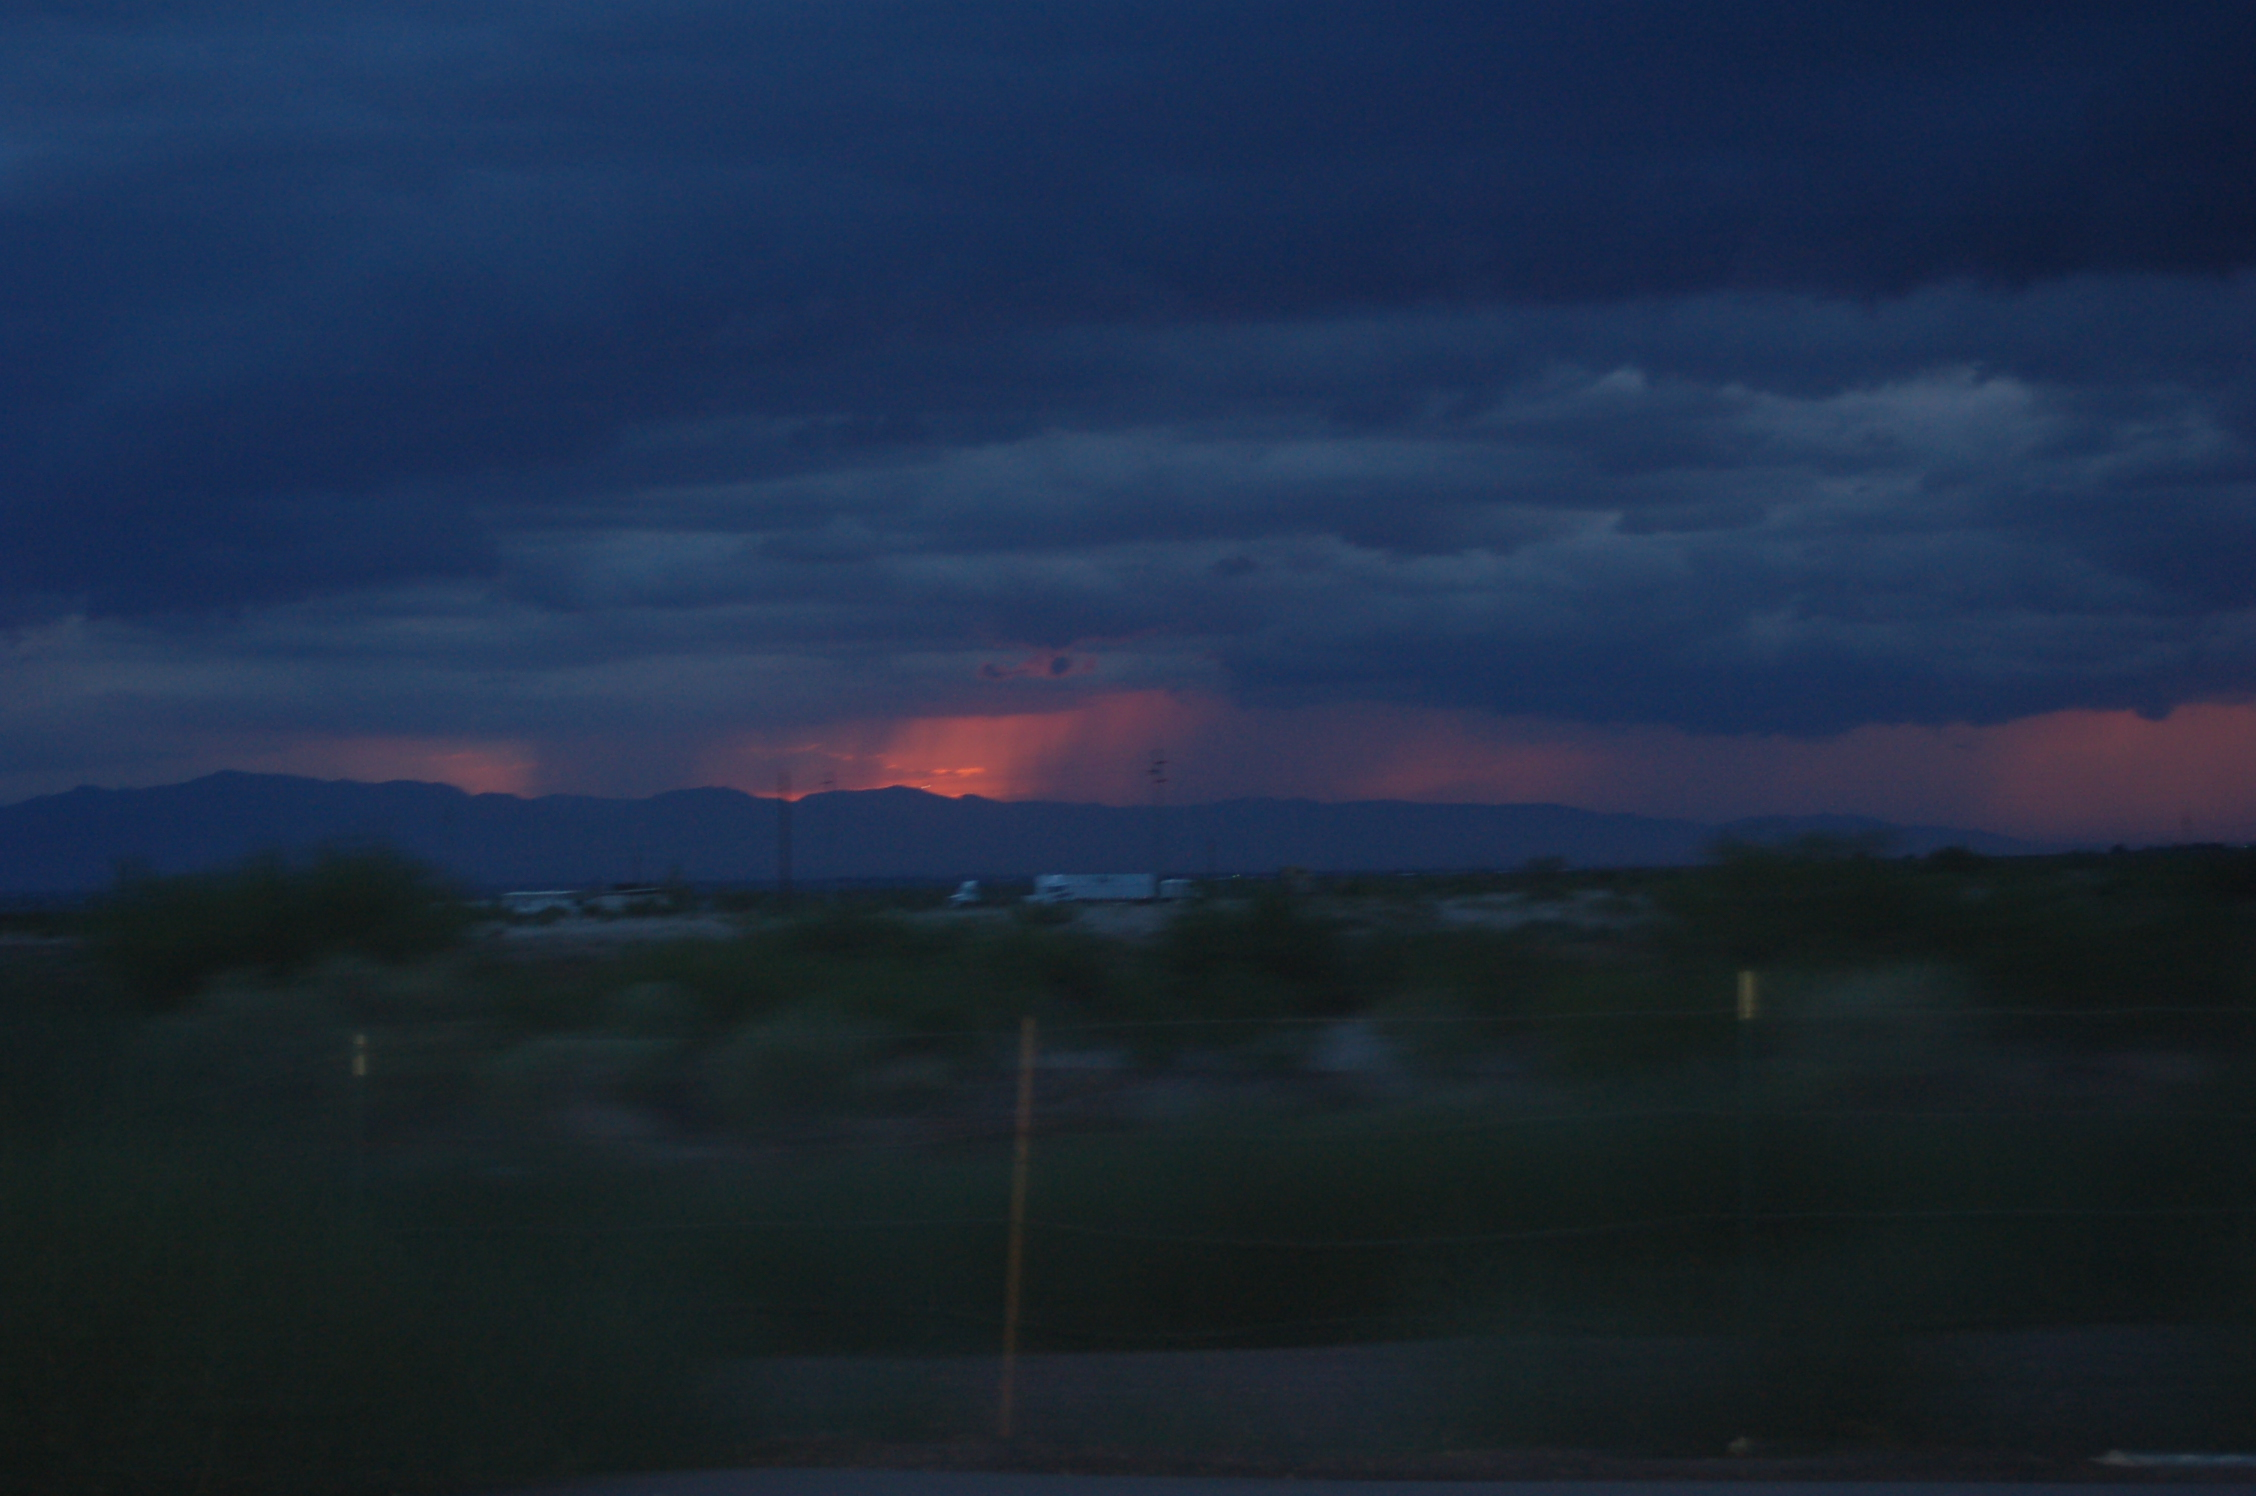 Desert rain at dusk. Chasing Great Plains Toads in southern Arizona's beautiful landscapes.